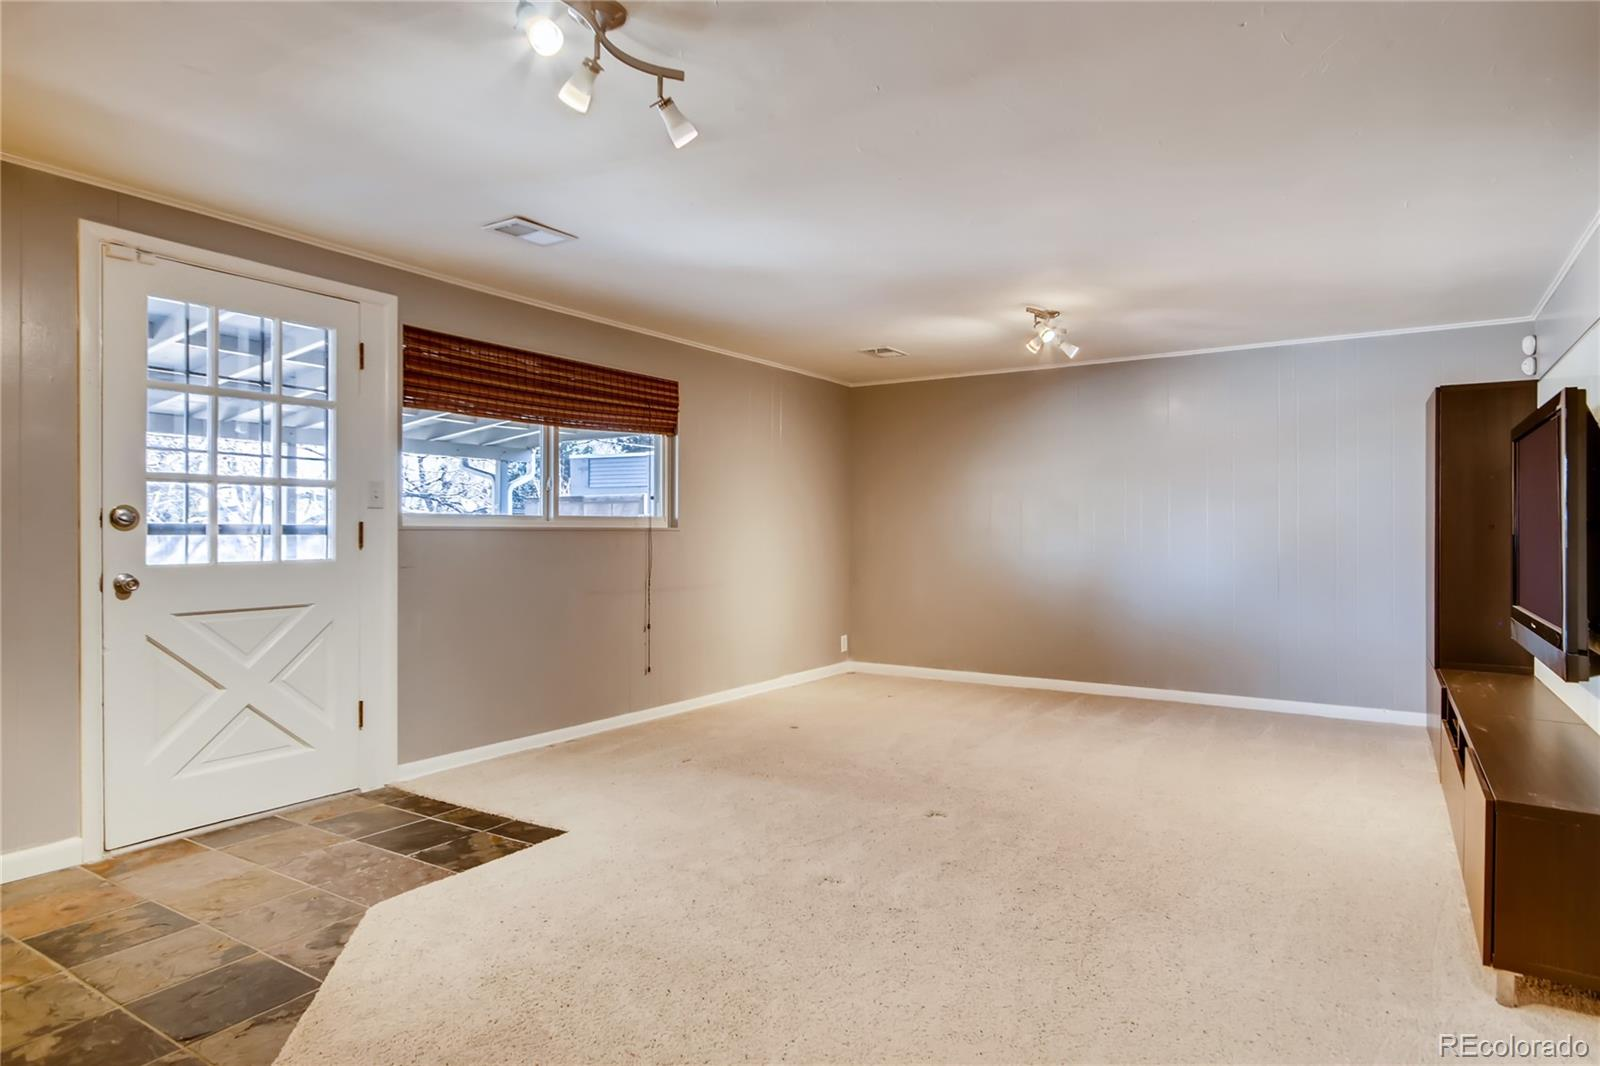 MLS# 9197299 - 23 - 10511 W 22nd Place, Lakewood, CO 80215